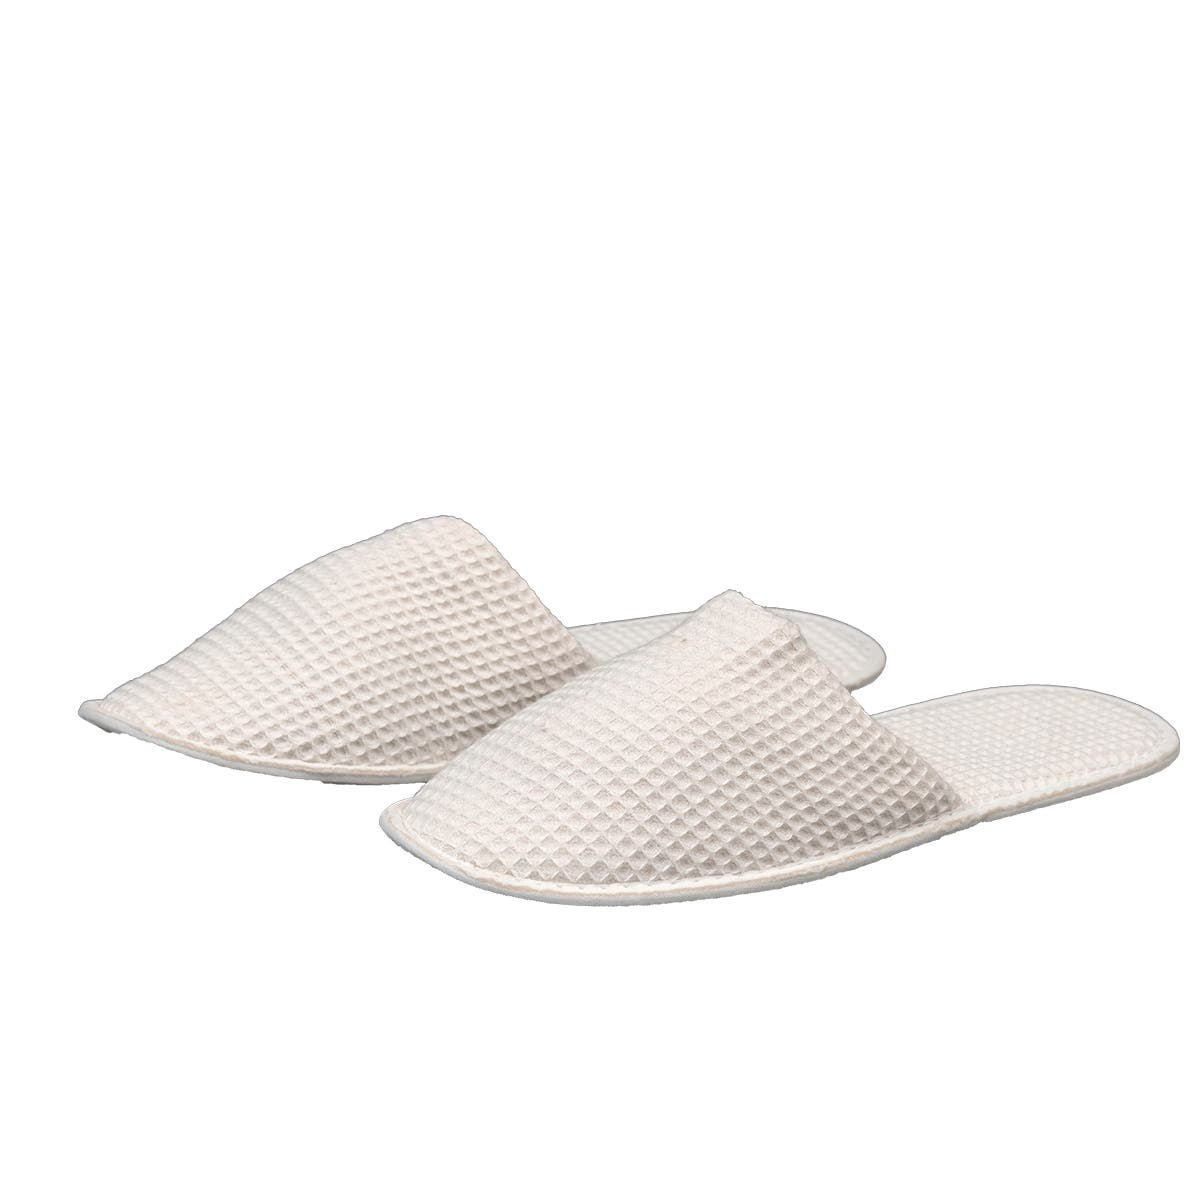 Closed Toe Slippers, One Size, Waffle 100% Cotton